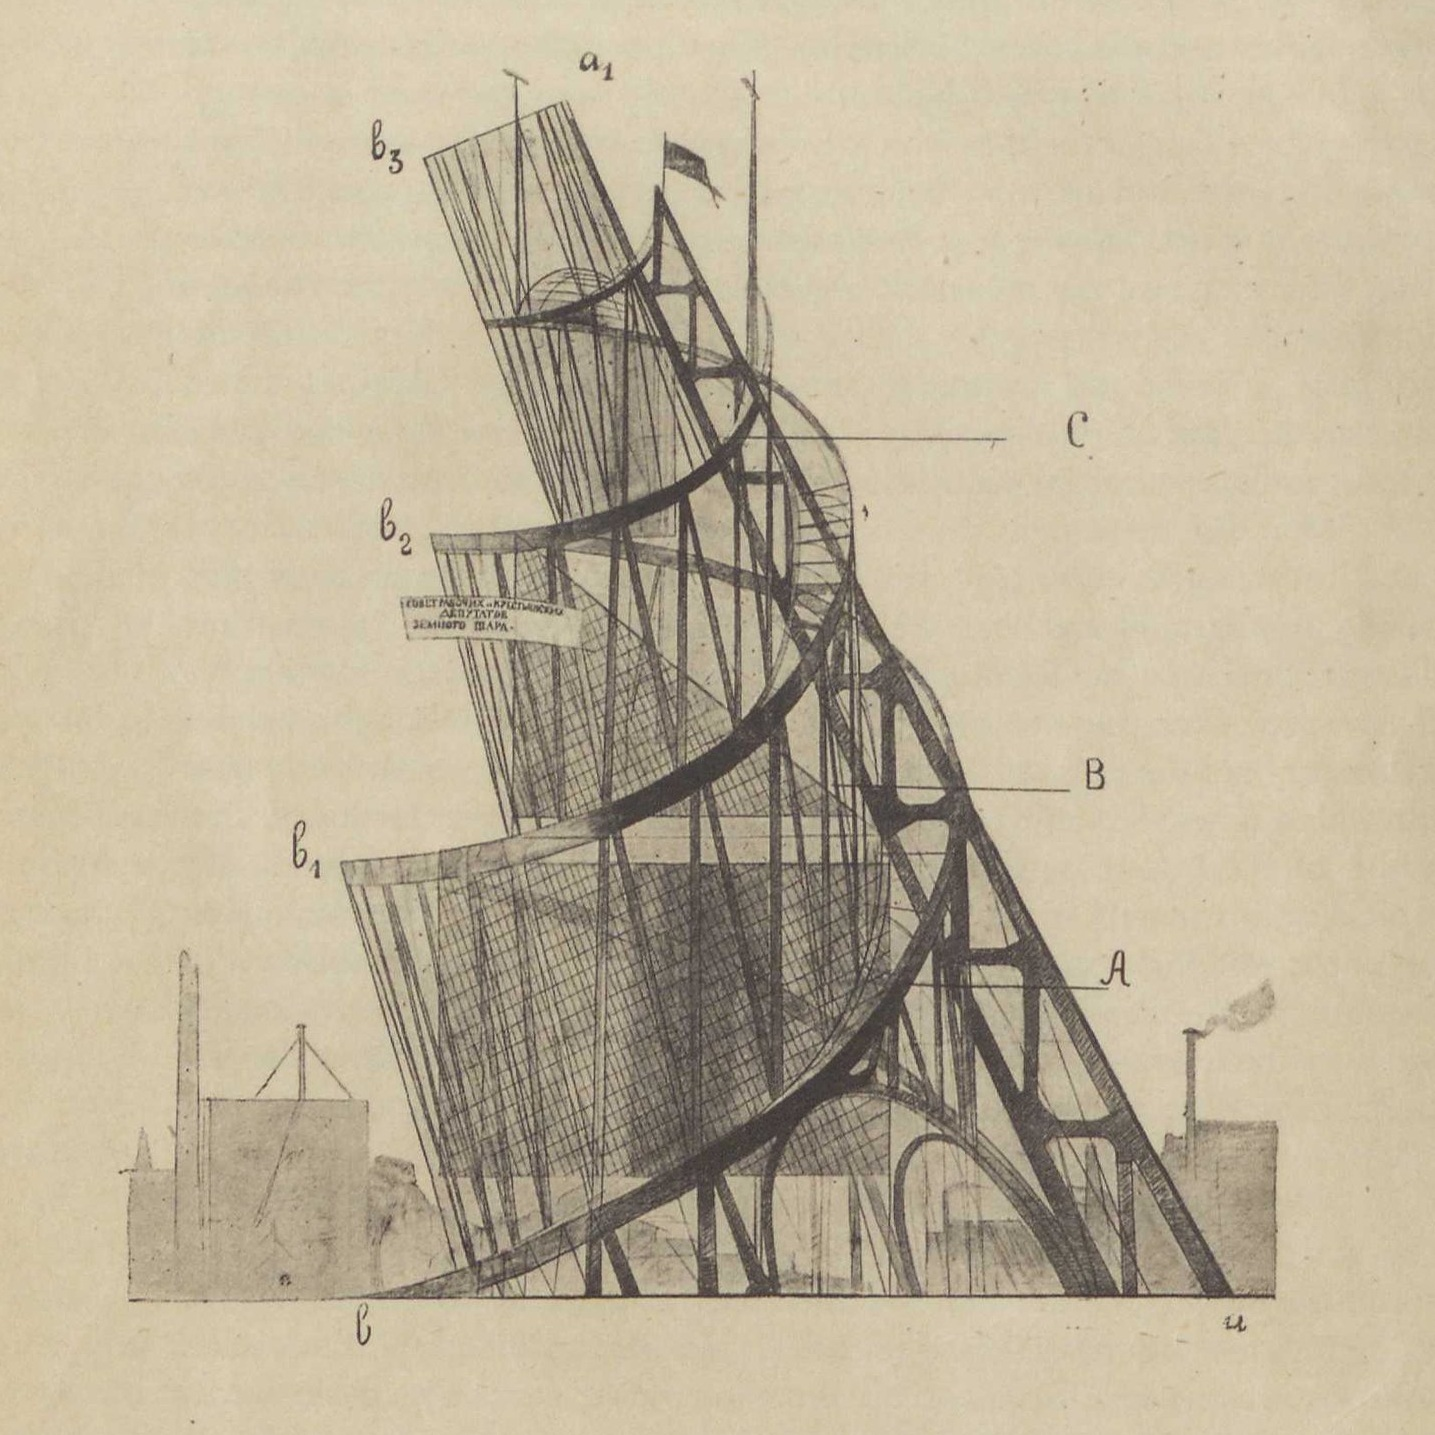 Sketch of The Monument to the Third International, Petrograd, 1920 found in Punin's writings to explain the purpose of every glass structure